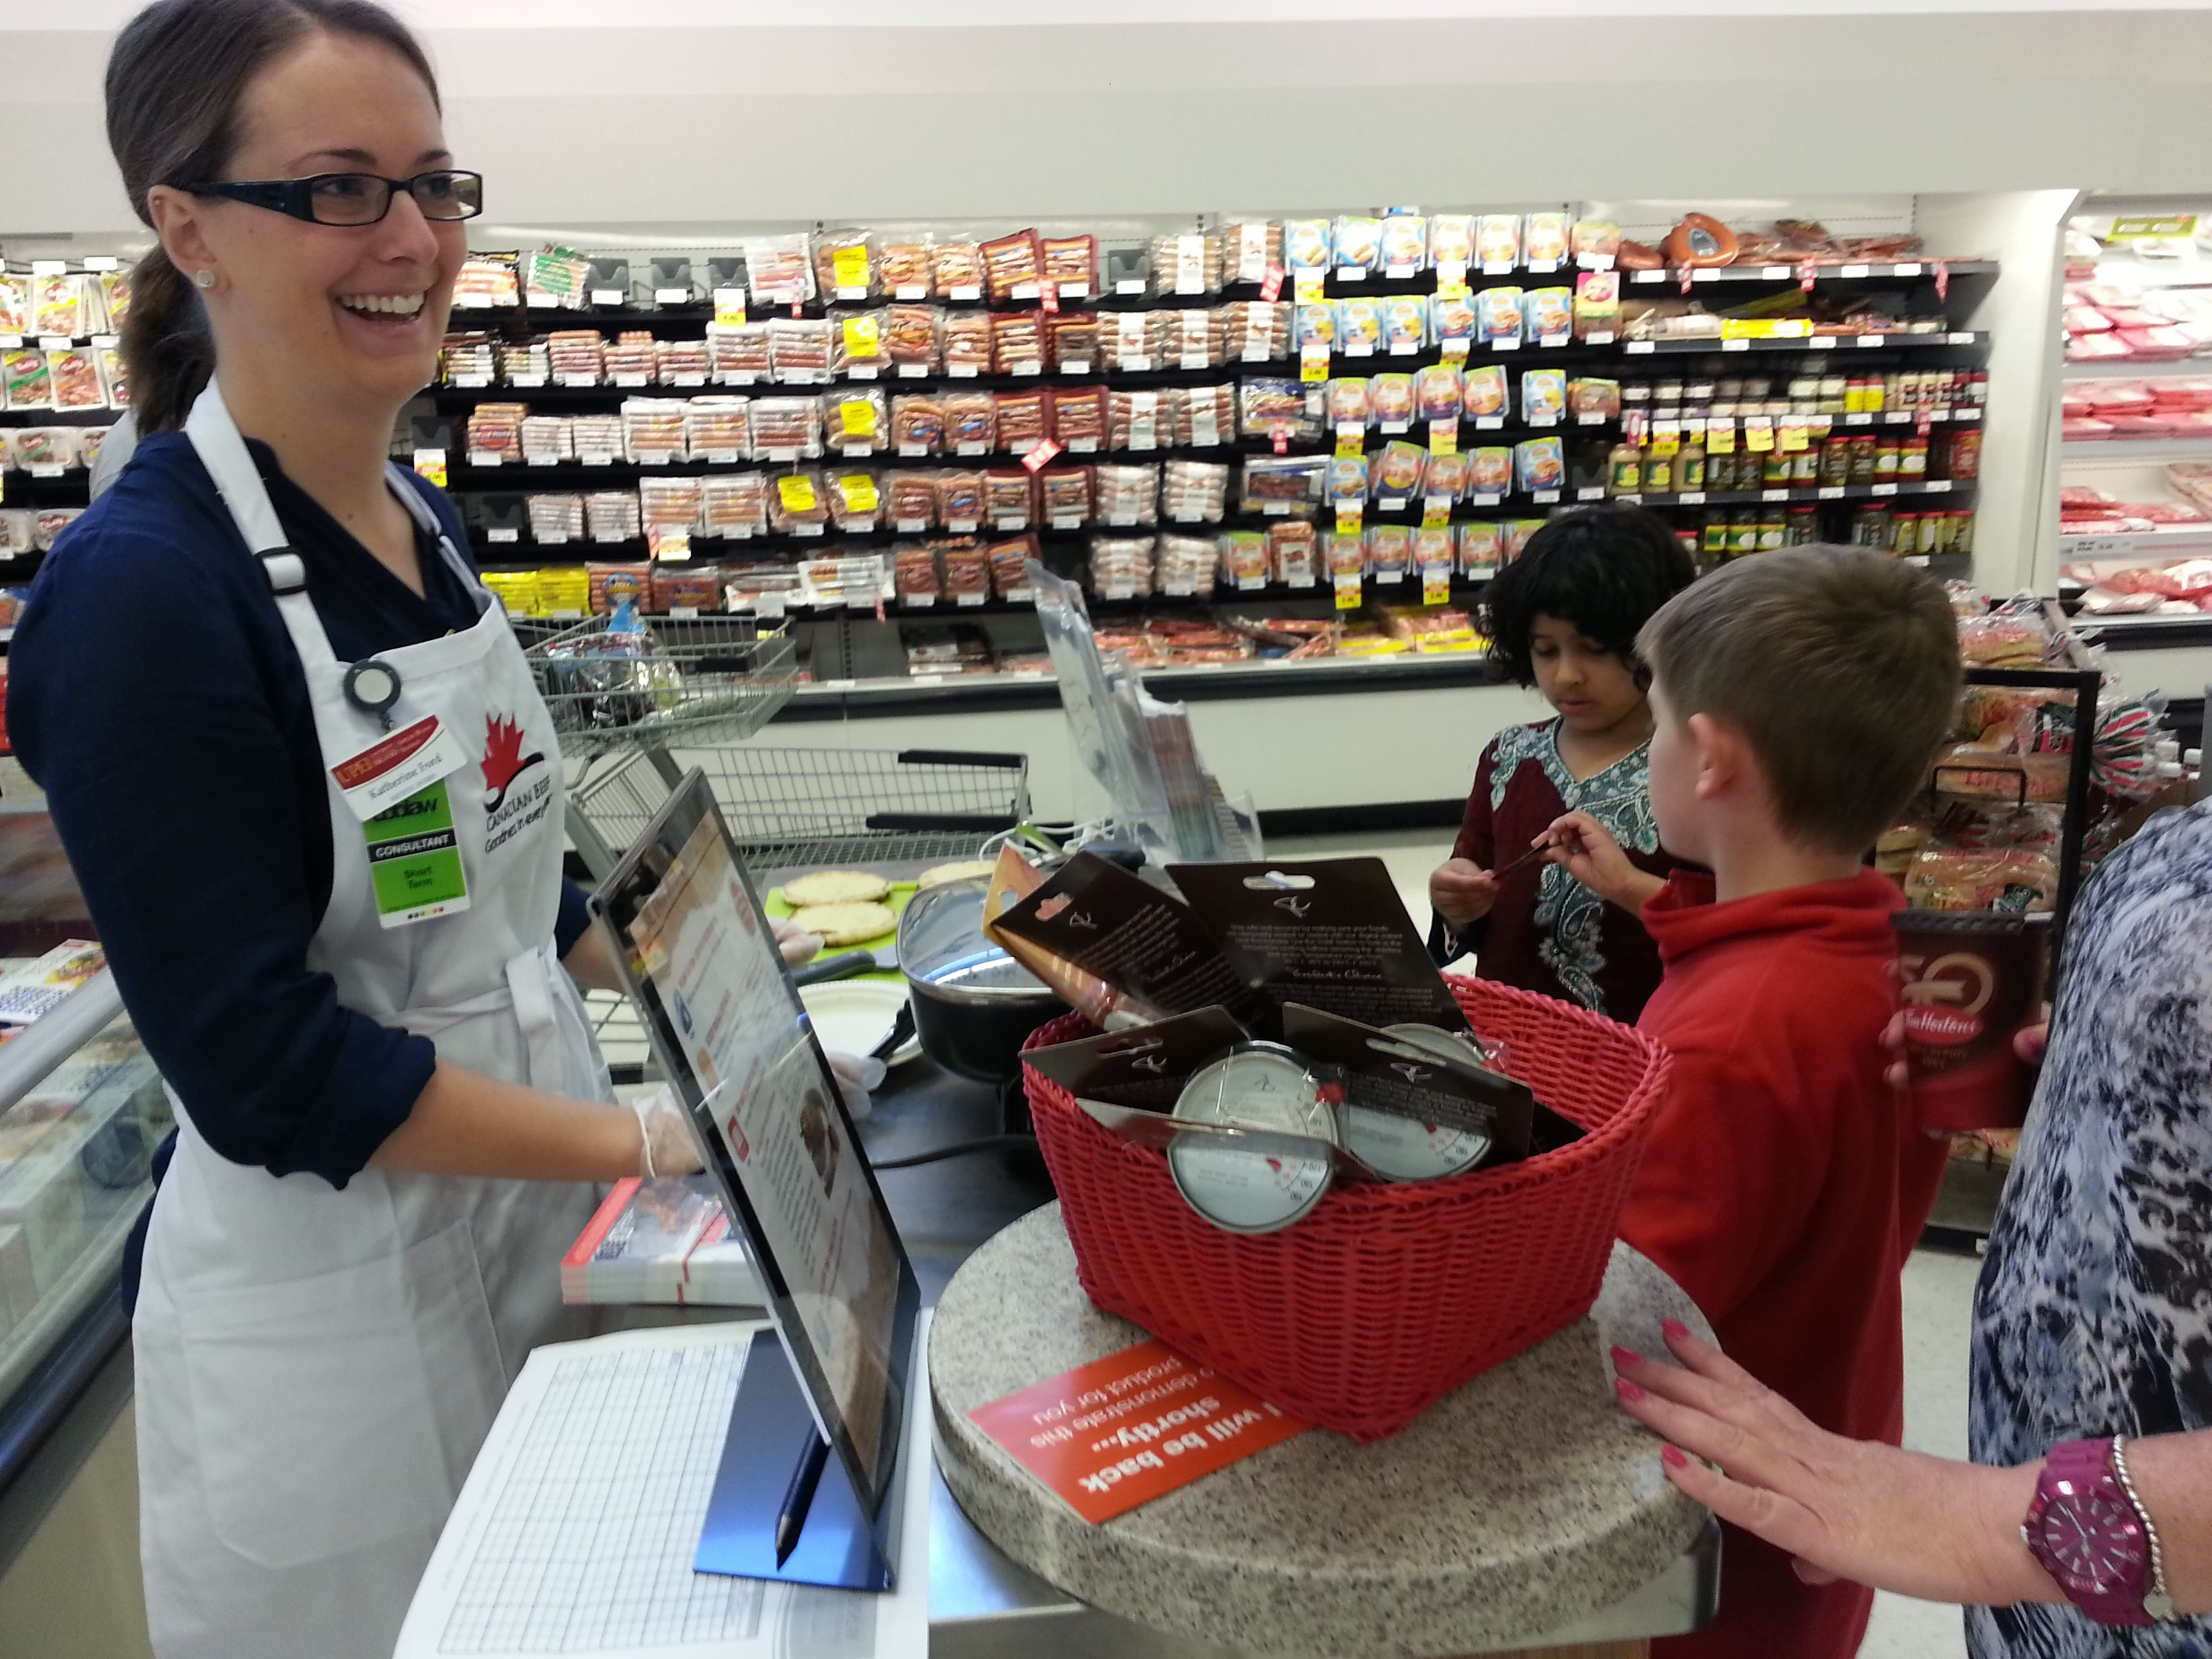 Images from loblaws dietitian days june 21 2014